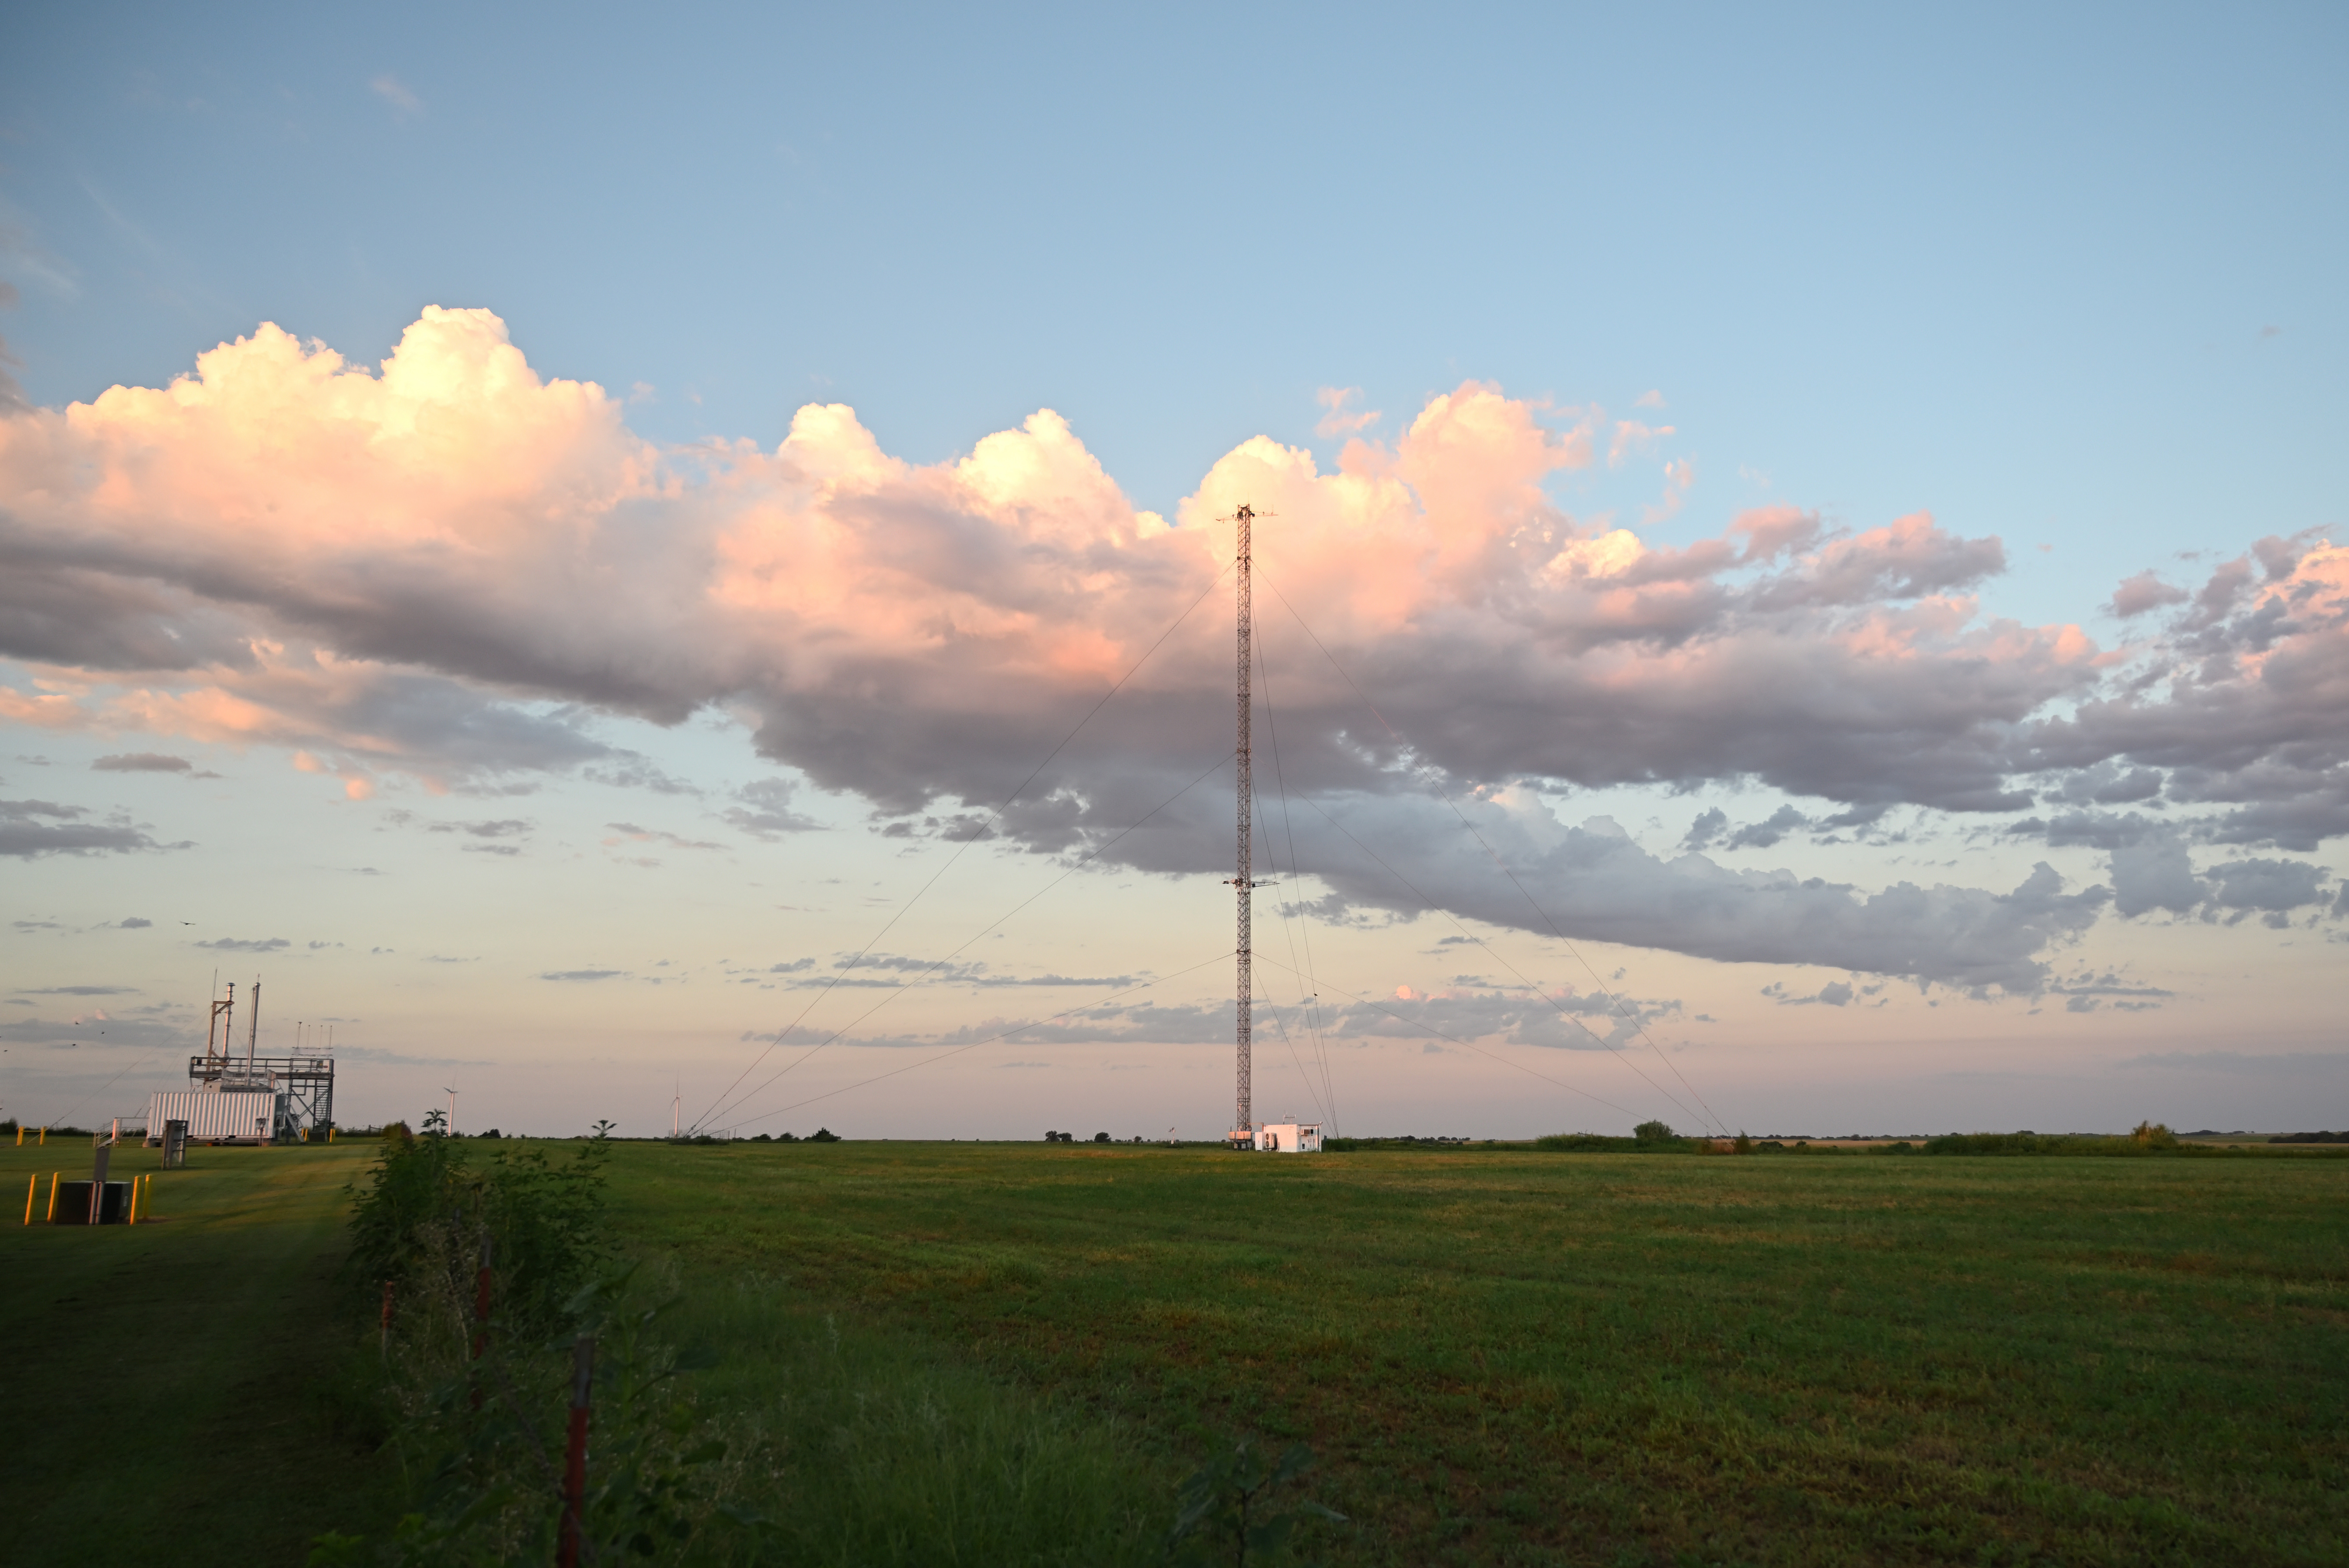 ARM's Southern Great Plains atmospheric observatory